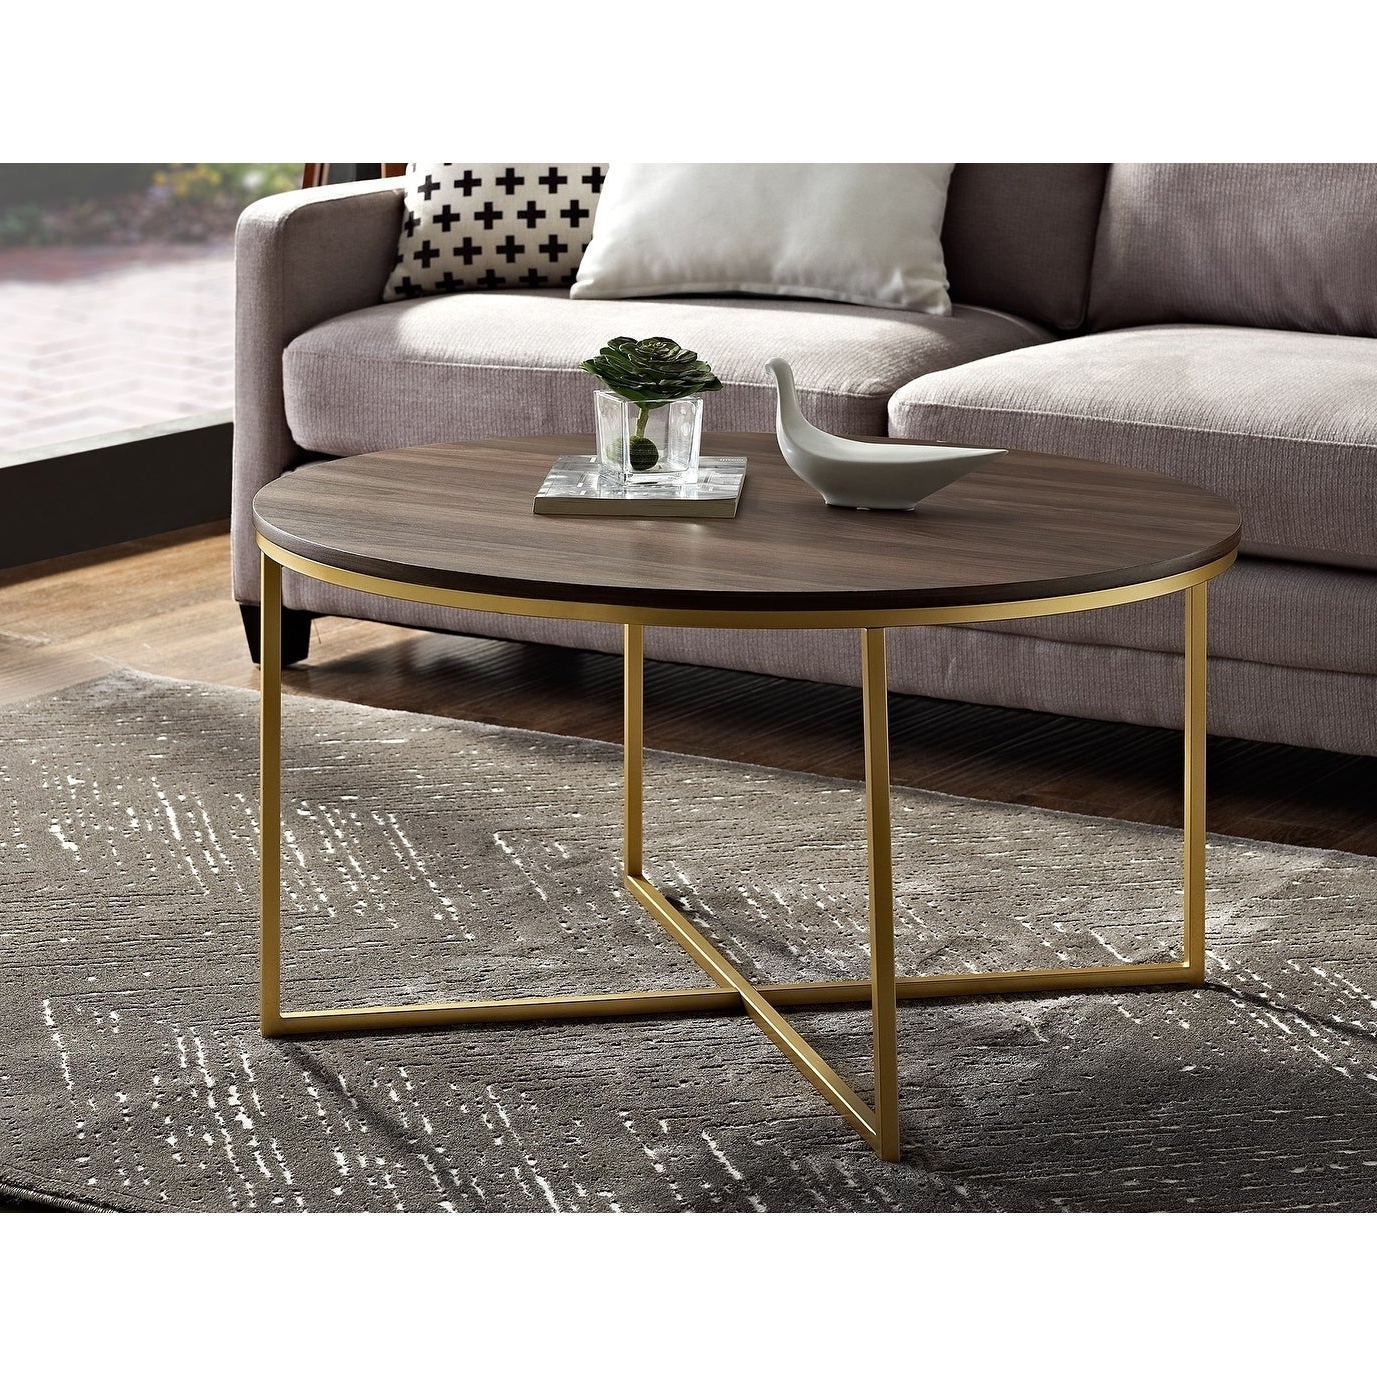 Most Recently Released Silver Orchid Ipsen Round Coffee Tables With X Base In Silver Orchid Ipsen 36 Inch Round Coffee Table With X Base – 36 X 36 X 19h (View 3 of 20)